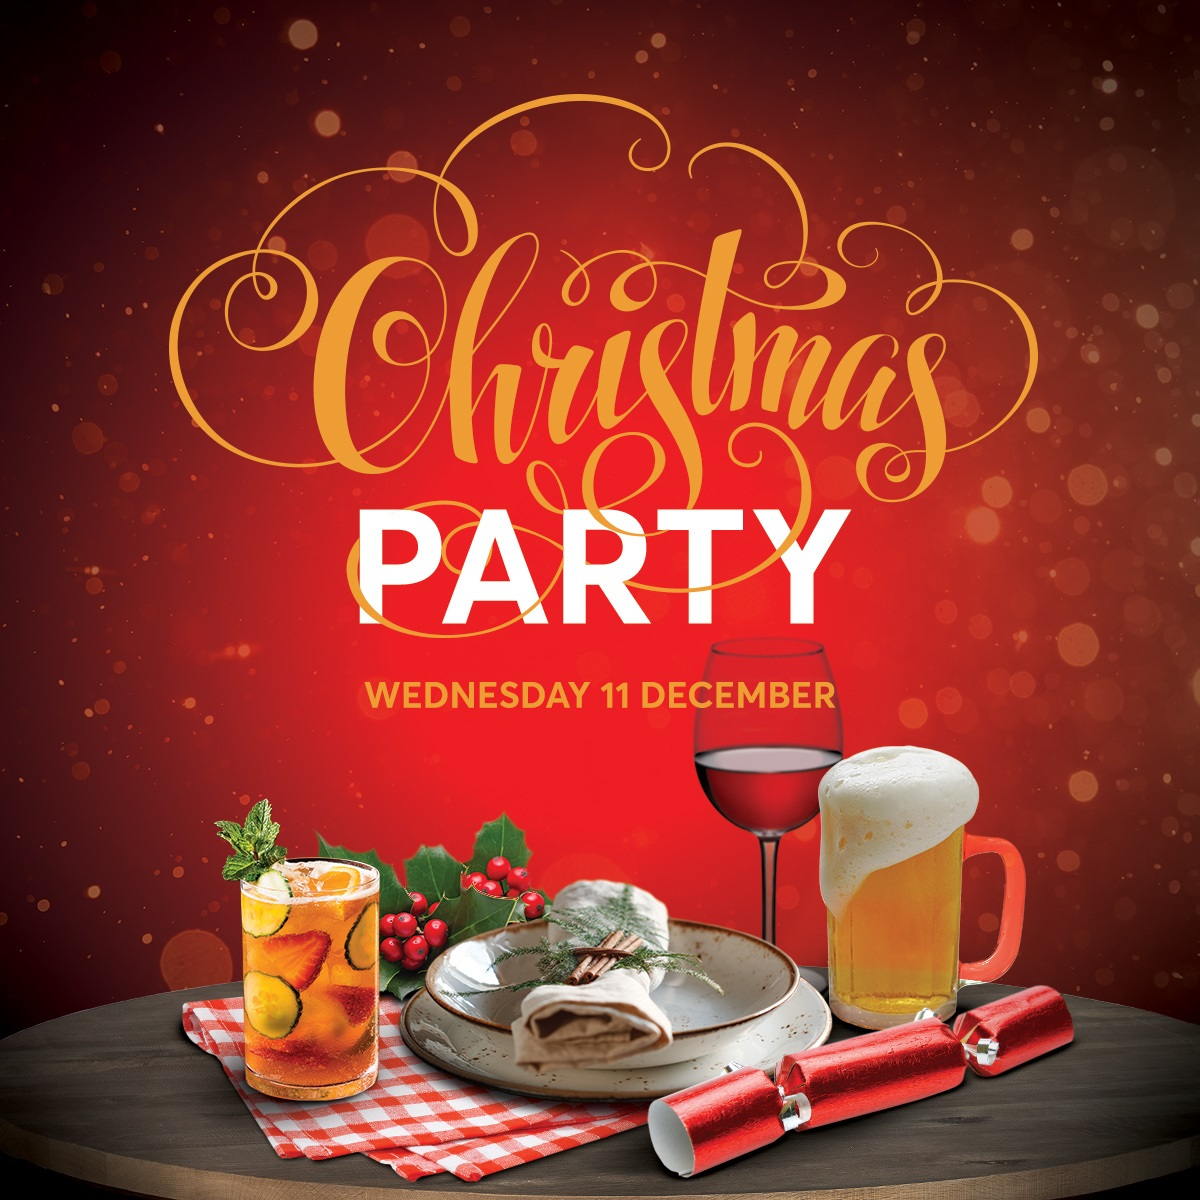 The Duxton Christmas Party Square